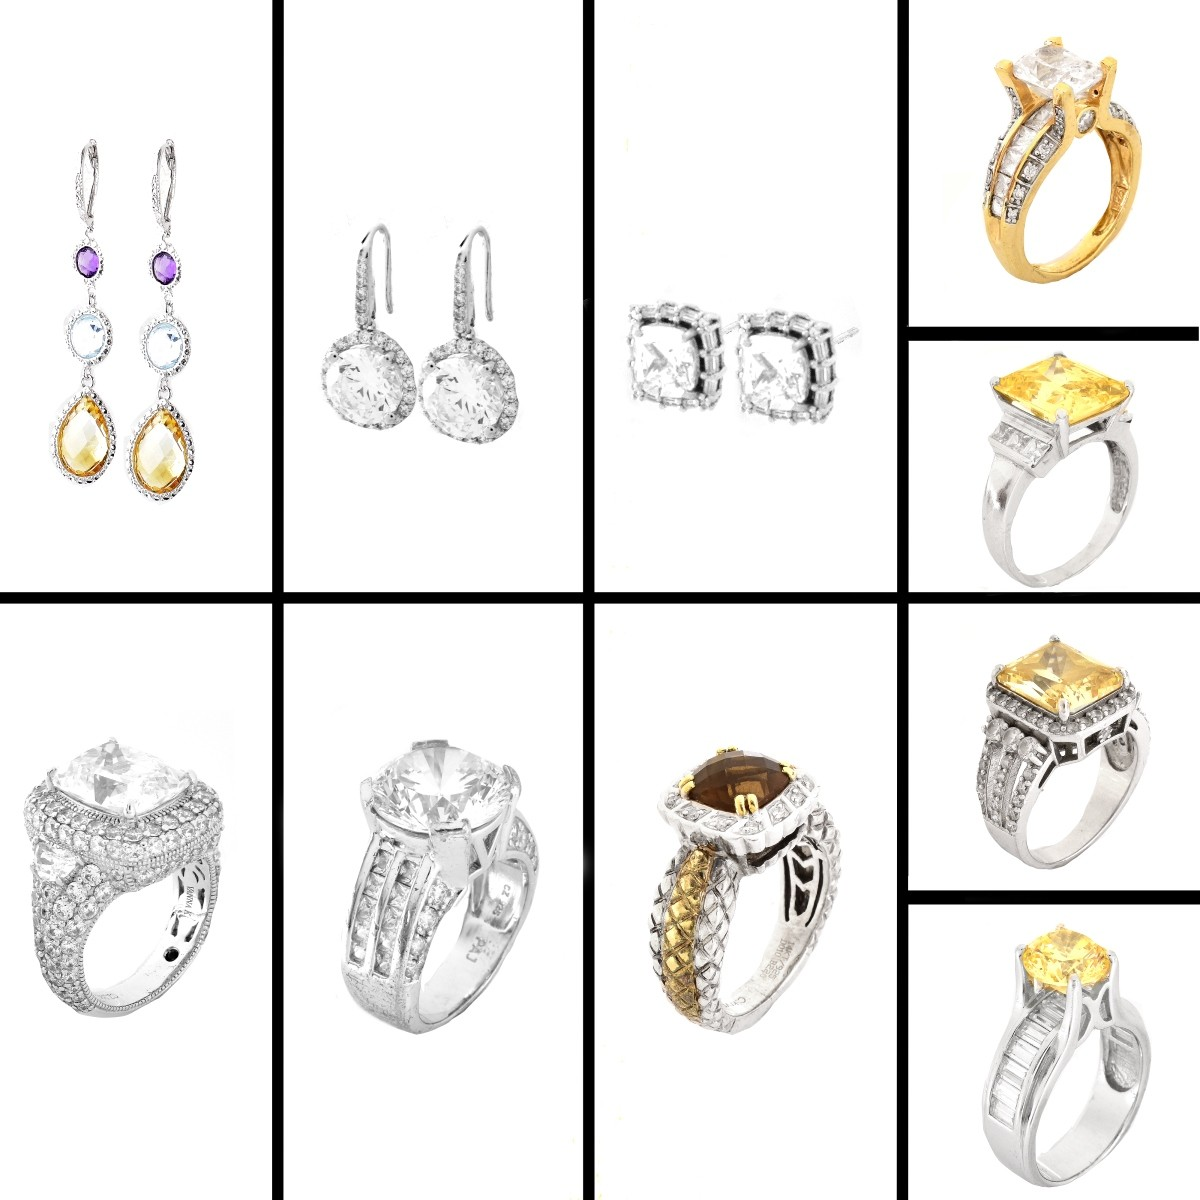 Sterling Silver Rings and Earrings